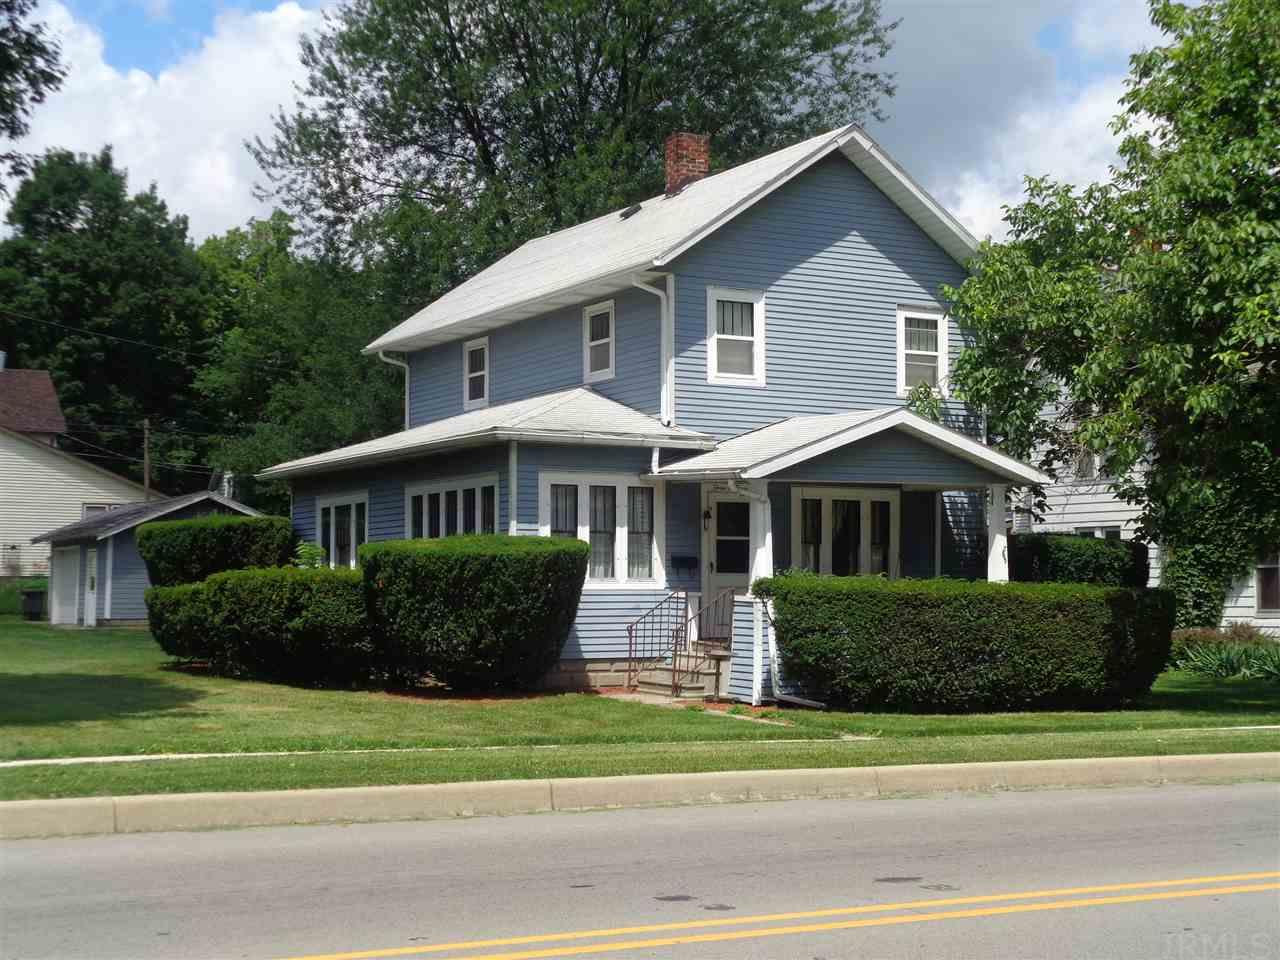 303 N Detroit, Lagrange, IN 46761